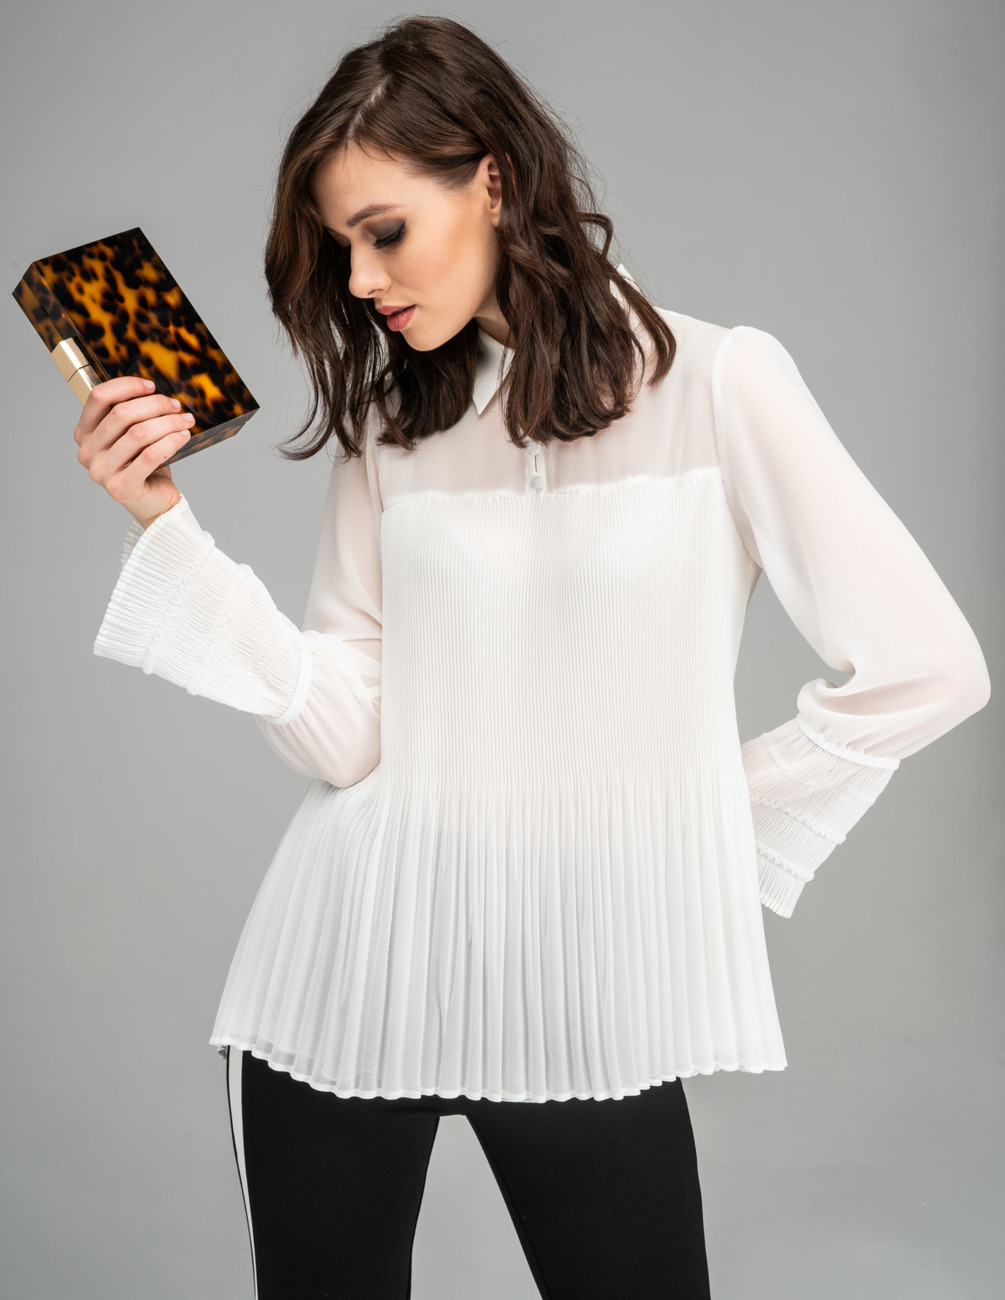 Blouse White Fall Winter 2019 Tops Kmx Party